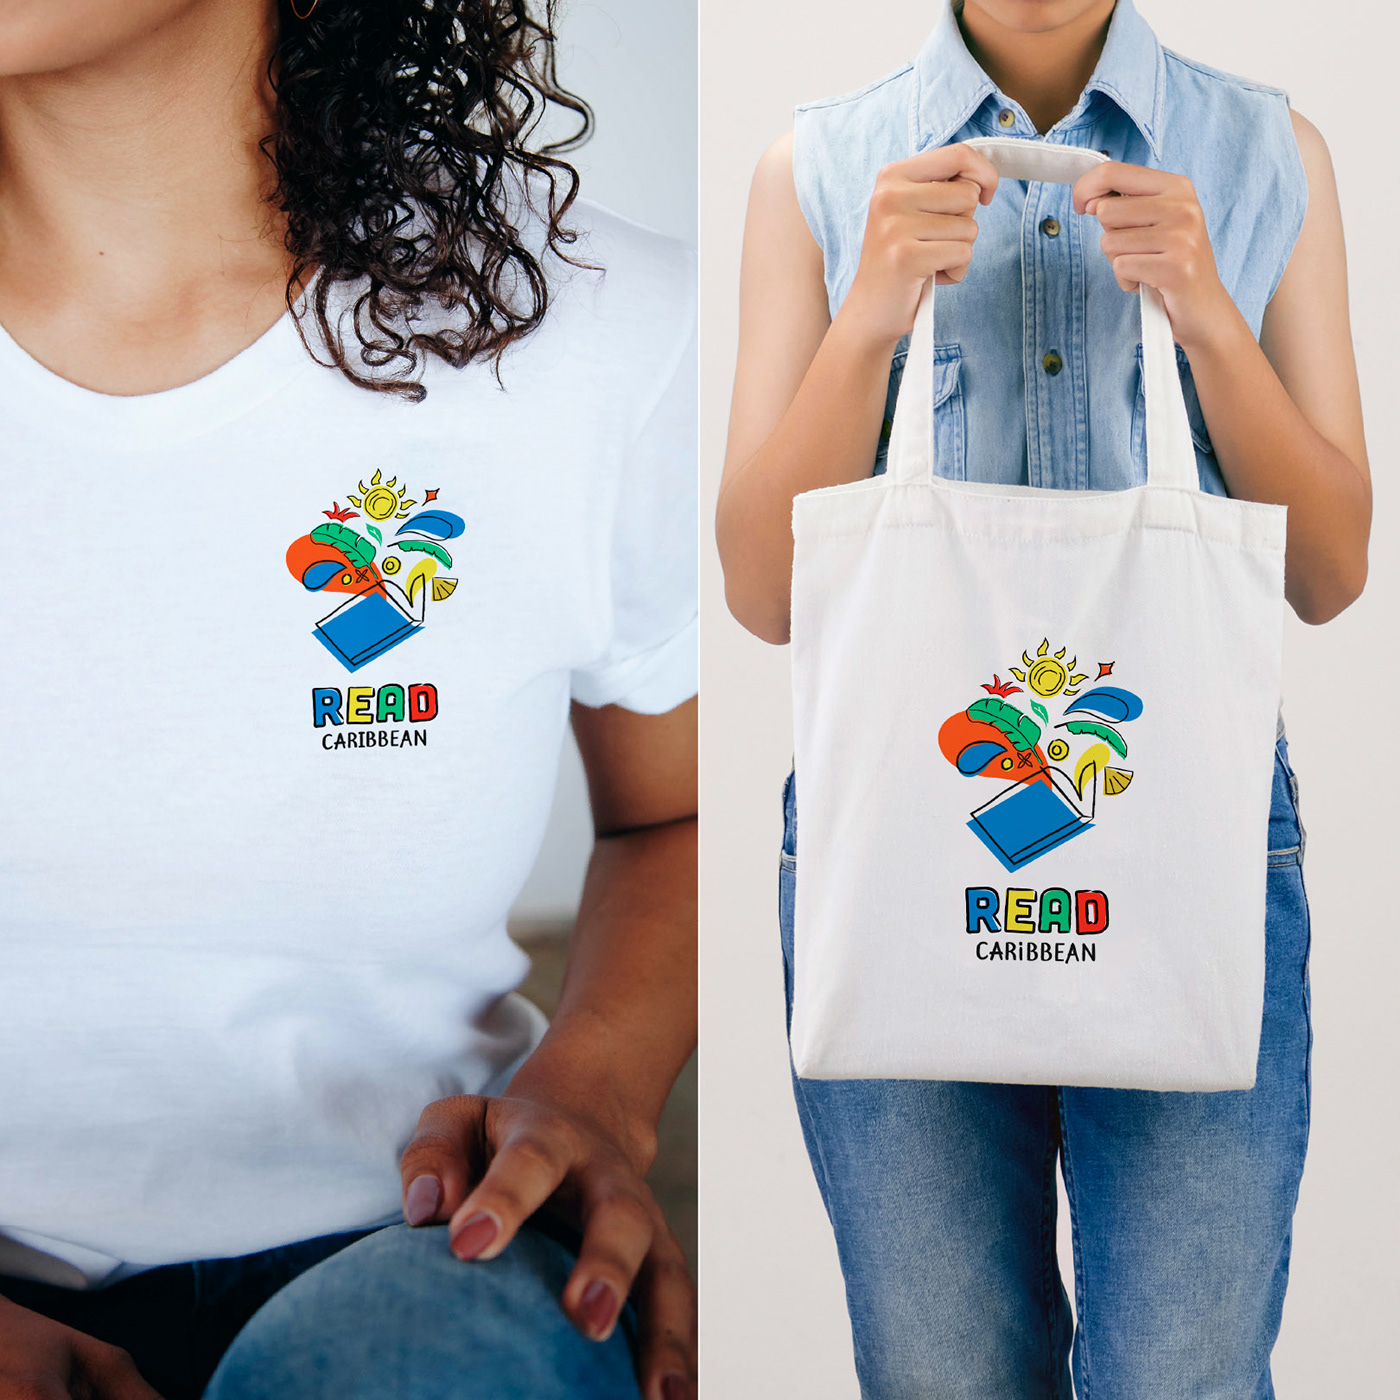 T shirt and Tote bag design for Read Caribbean.